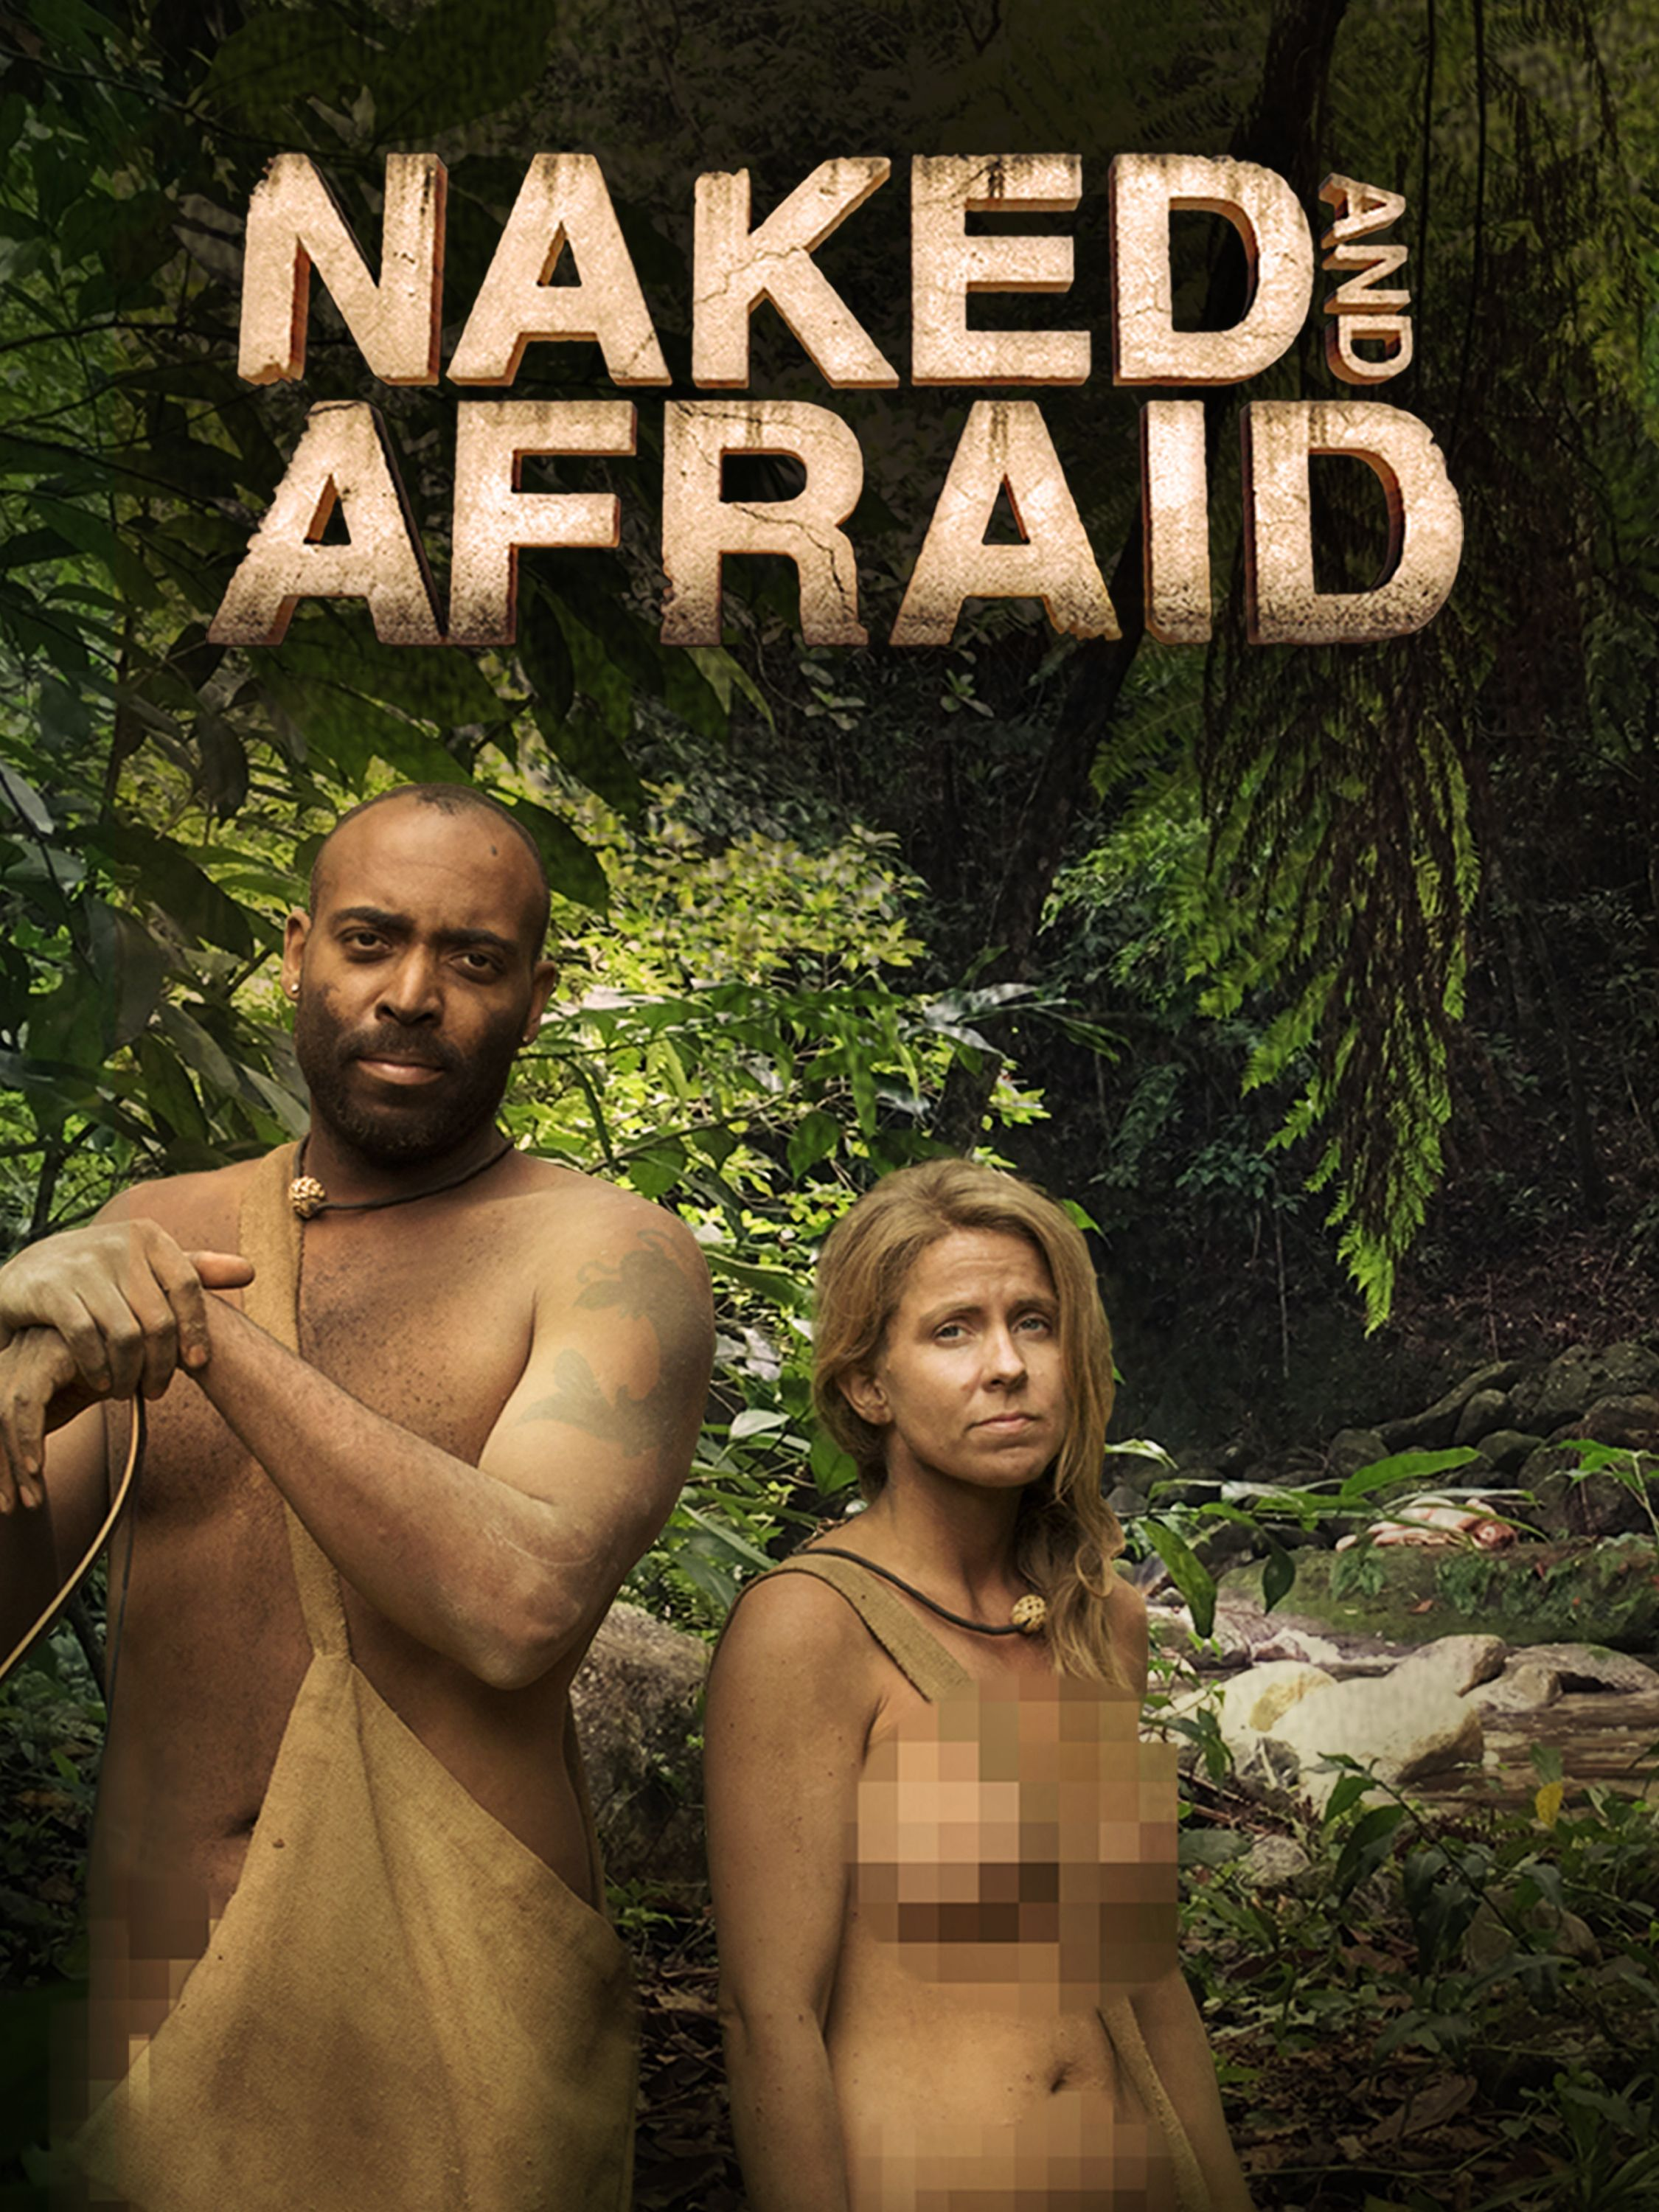 Short girl lesbian naked and afraid